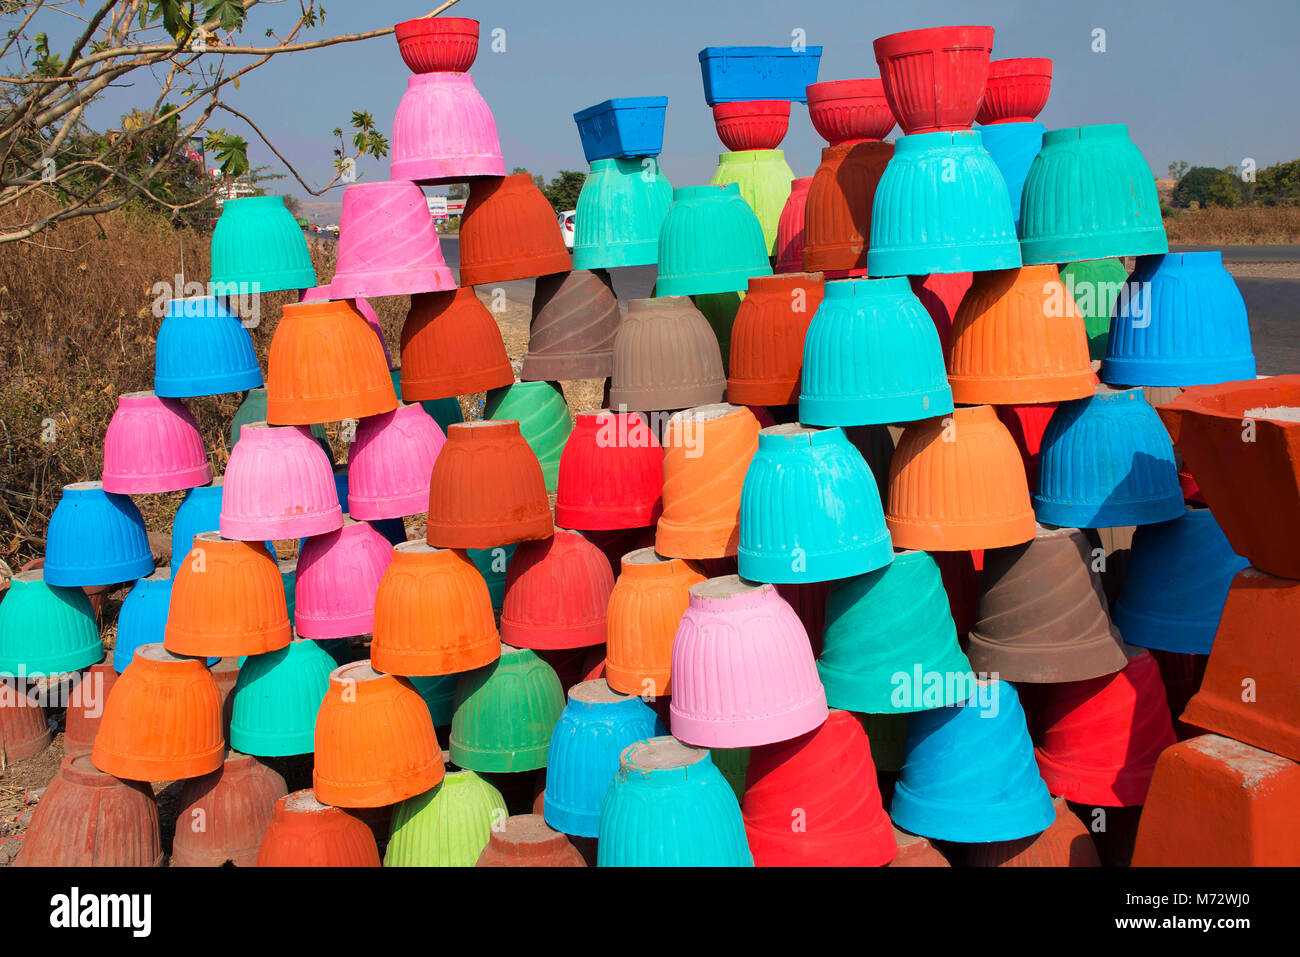 Earthen pots of different colors for sale. Pune district, Maharashtra, India - Stock Image